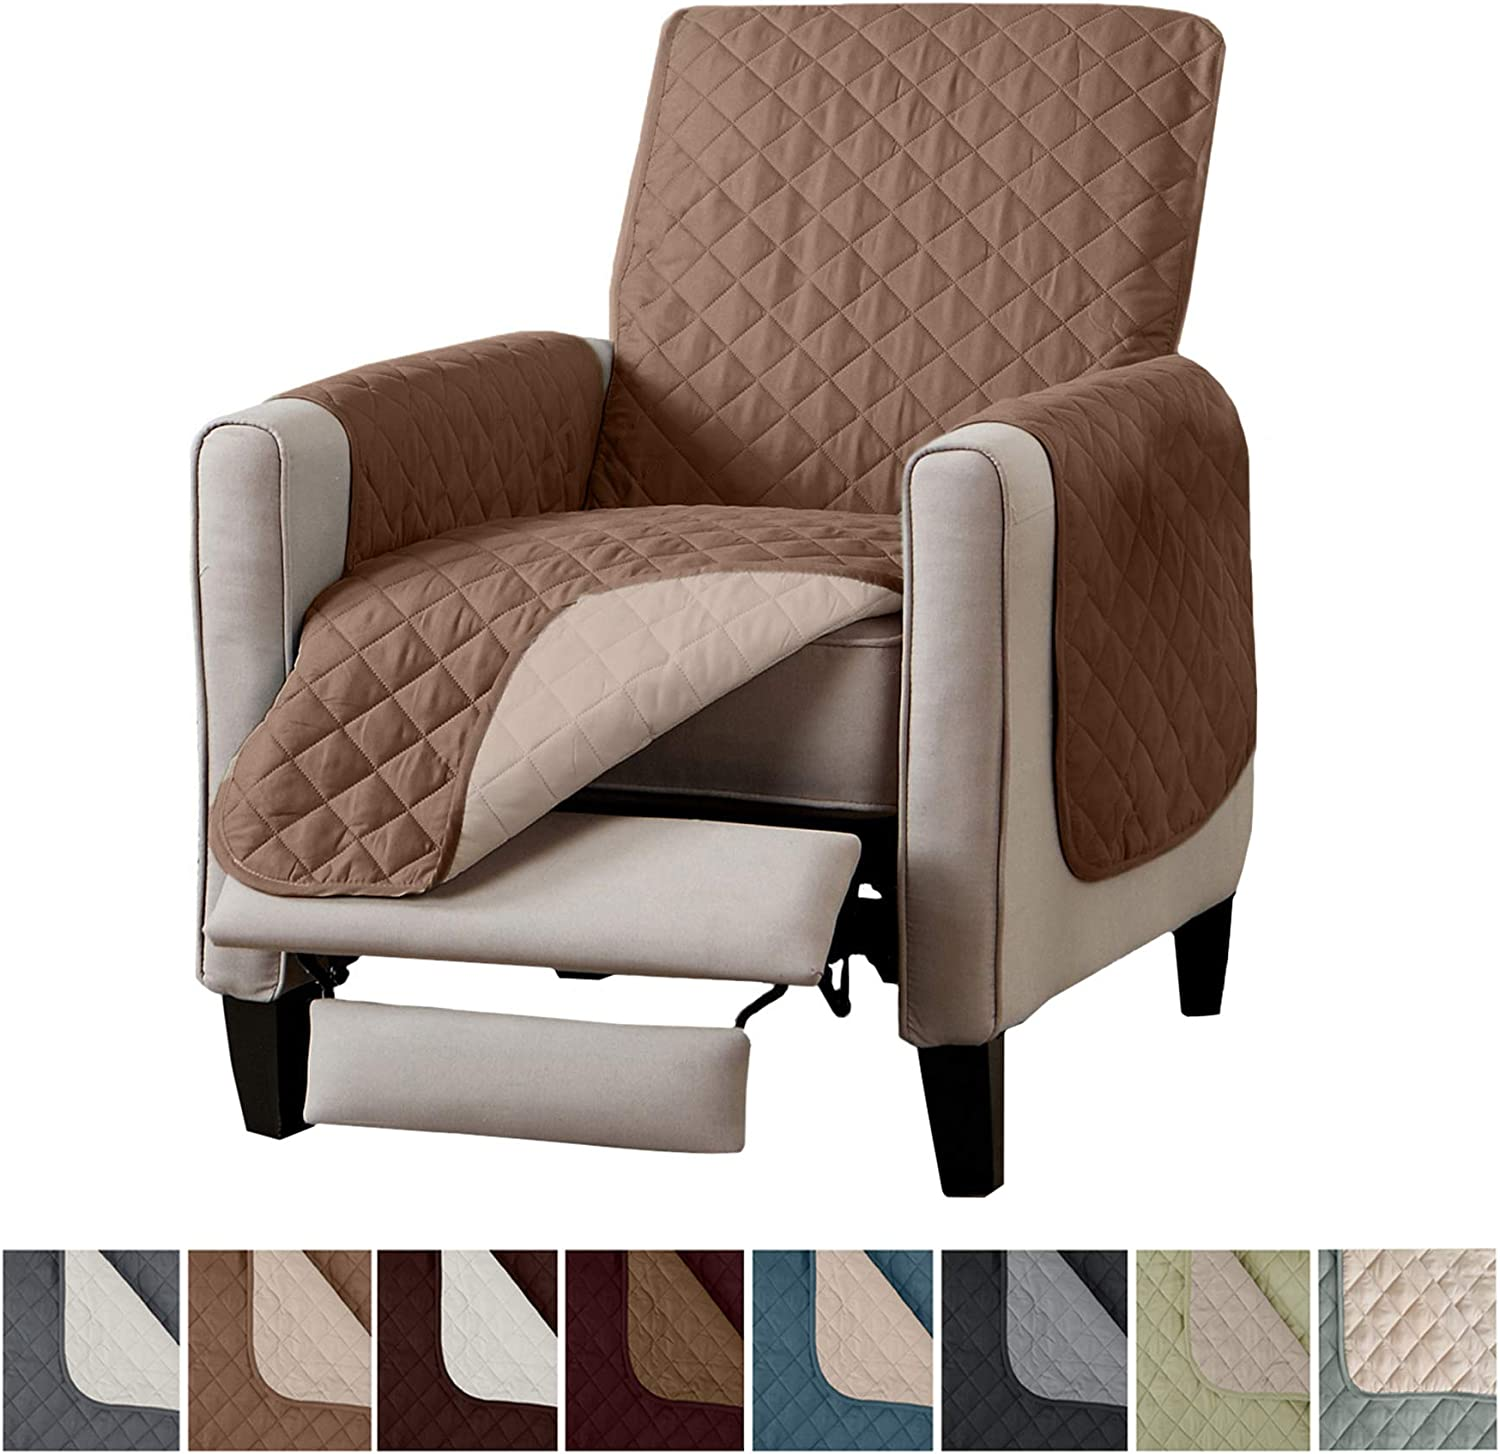 "Home Fashion Designs Reversible Recliner Chair Cover. Furniture Covers for Living Room with Secure Straps. Furniture Protectors for Kids, Dogs and Pets.  (26"" Recliner, Fossil Brown/Birch)"